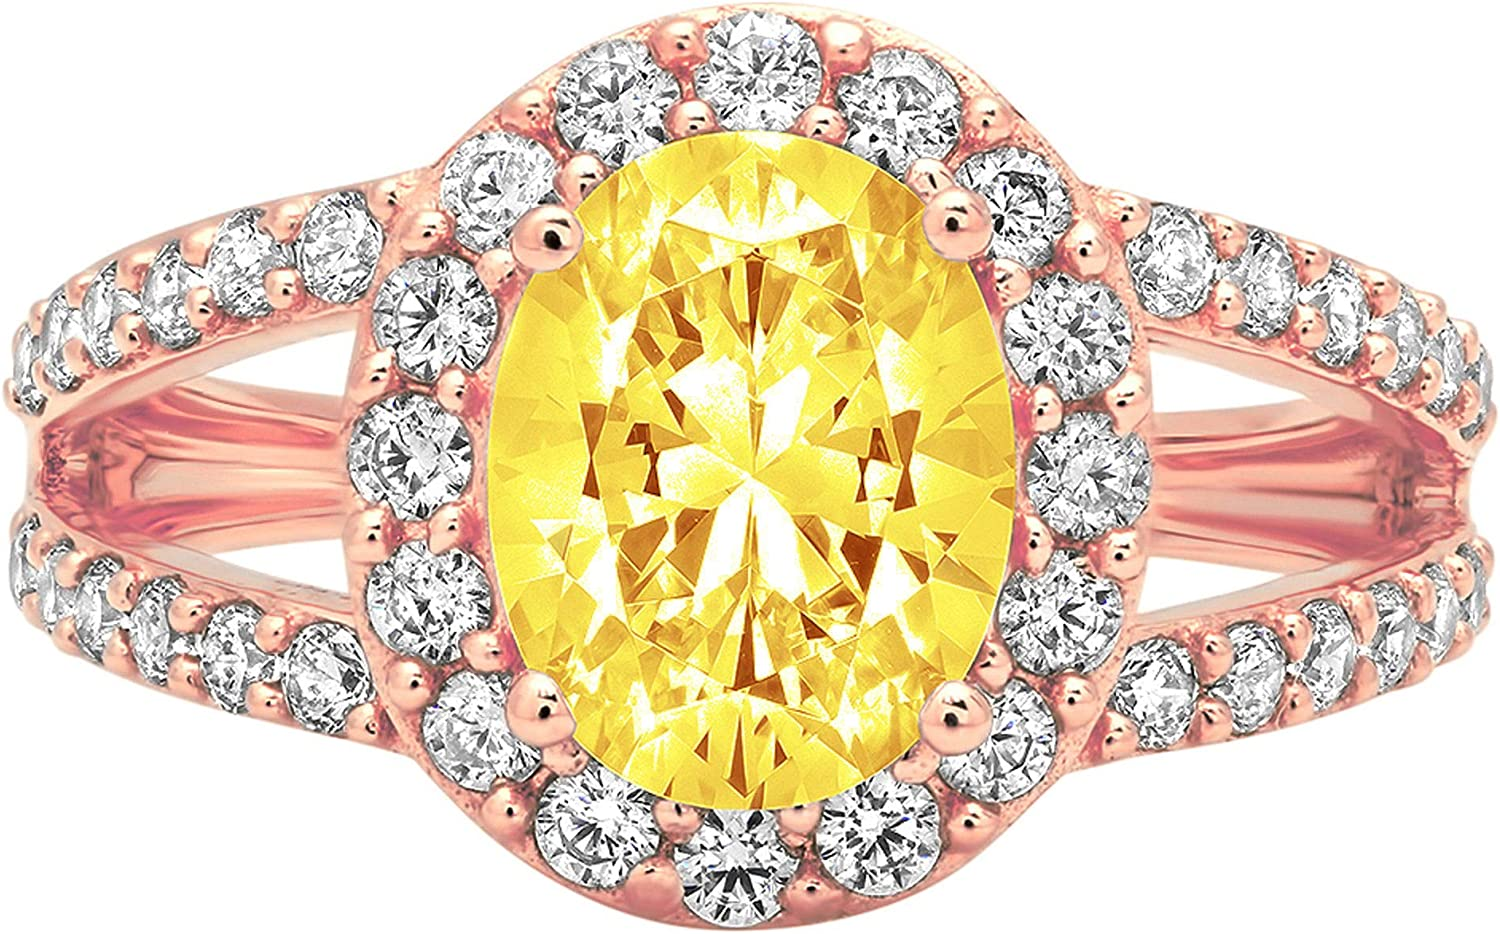 2.18ct Oval Cut Max 76% OFF Solitaire with Accent Ye Super sale Canary shank Halo split